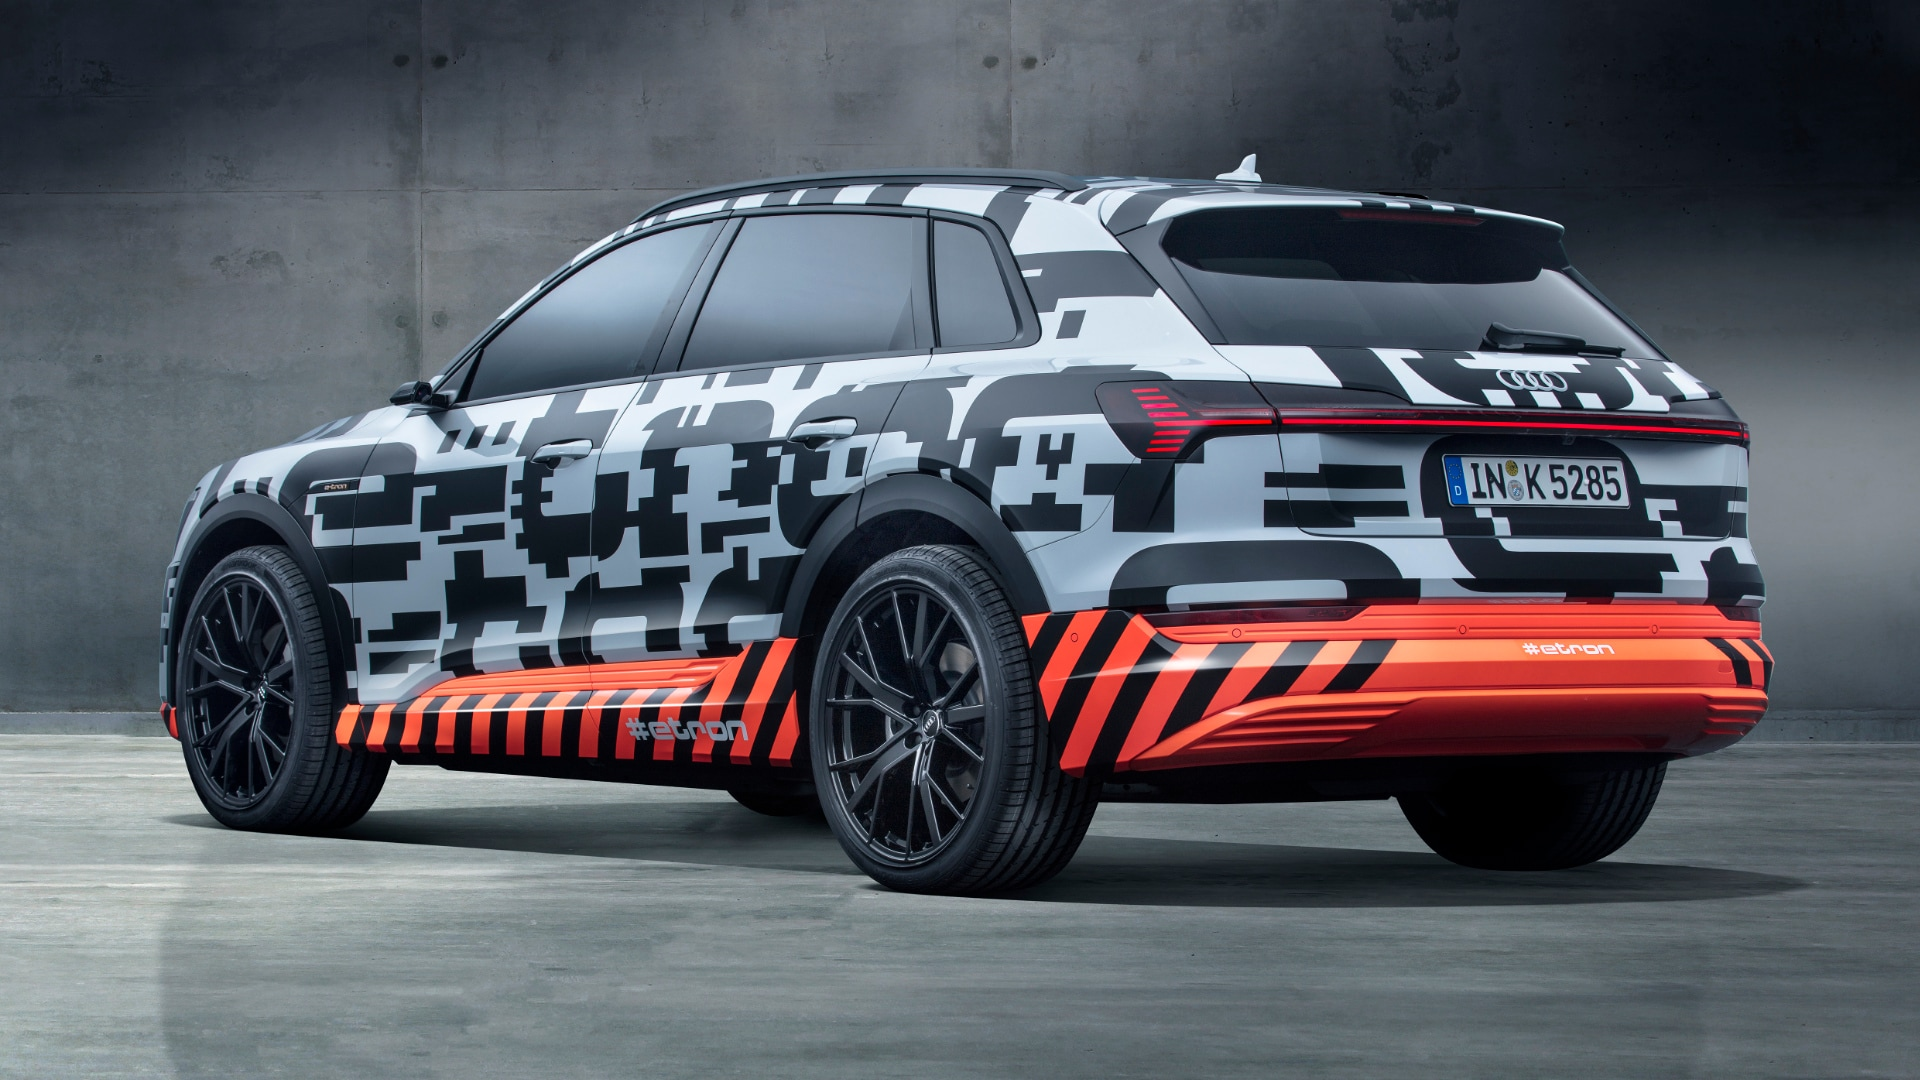 In total, nearly 250 prototypes of the first purely electrically driven series model from Audi are used for testing. 188 of them with the special e-tron camouflage film.